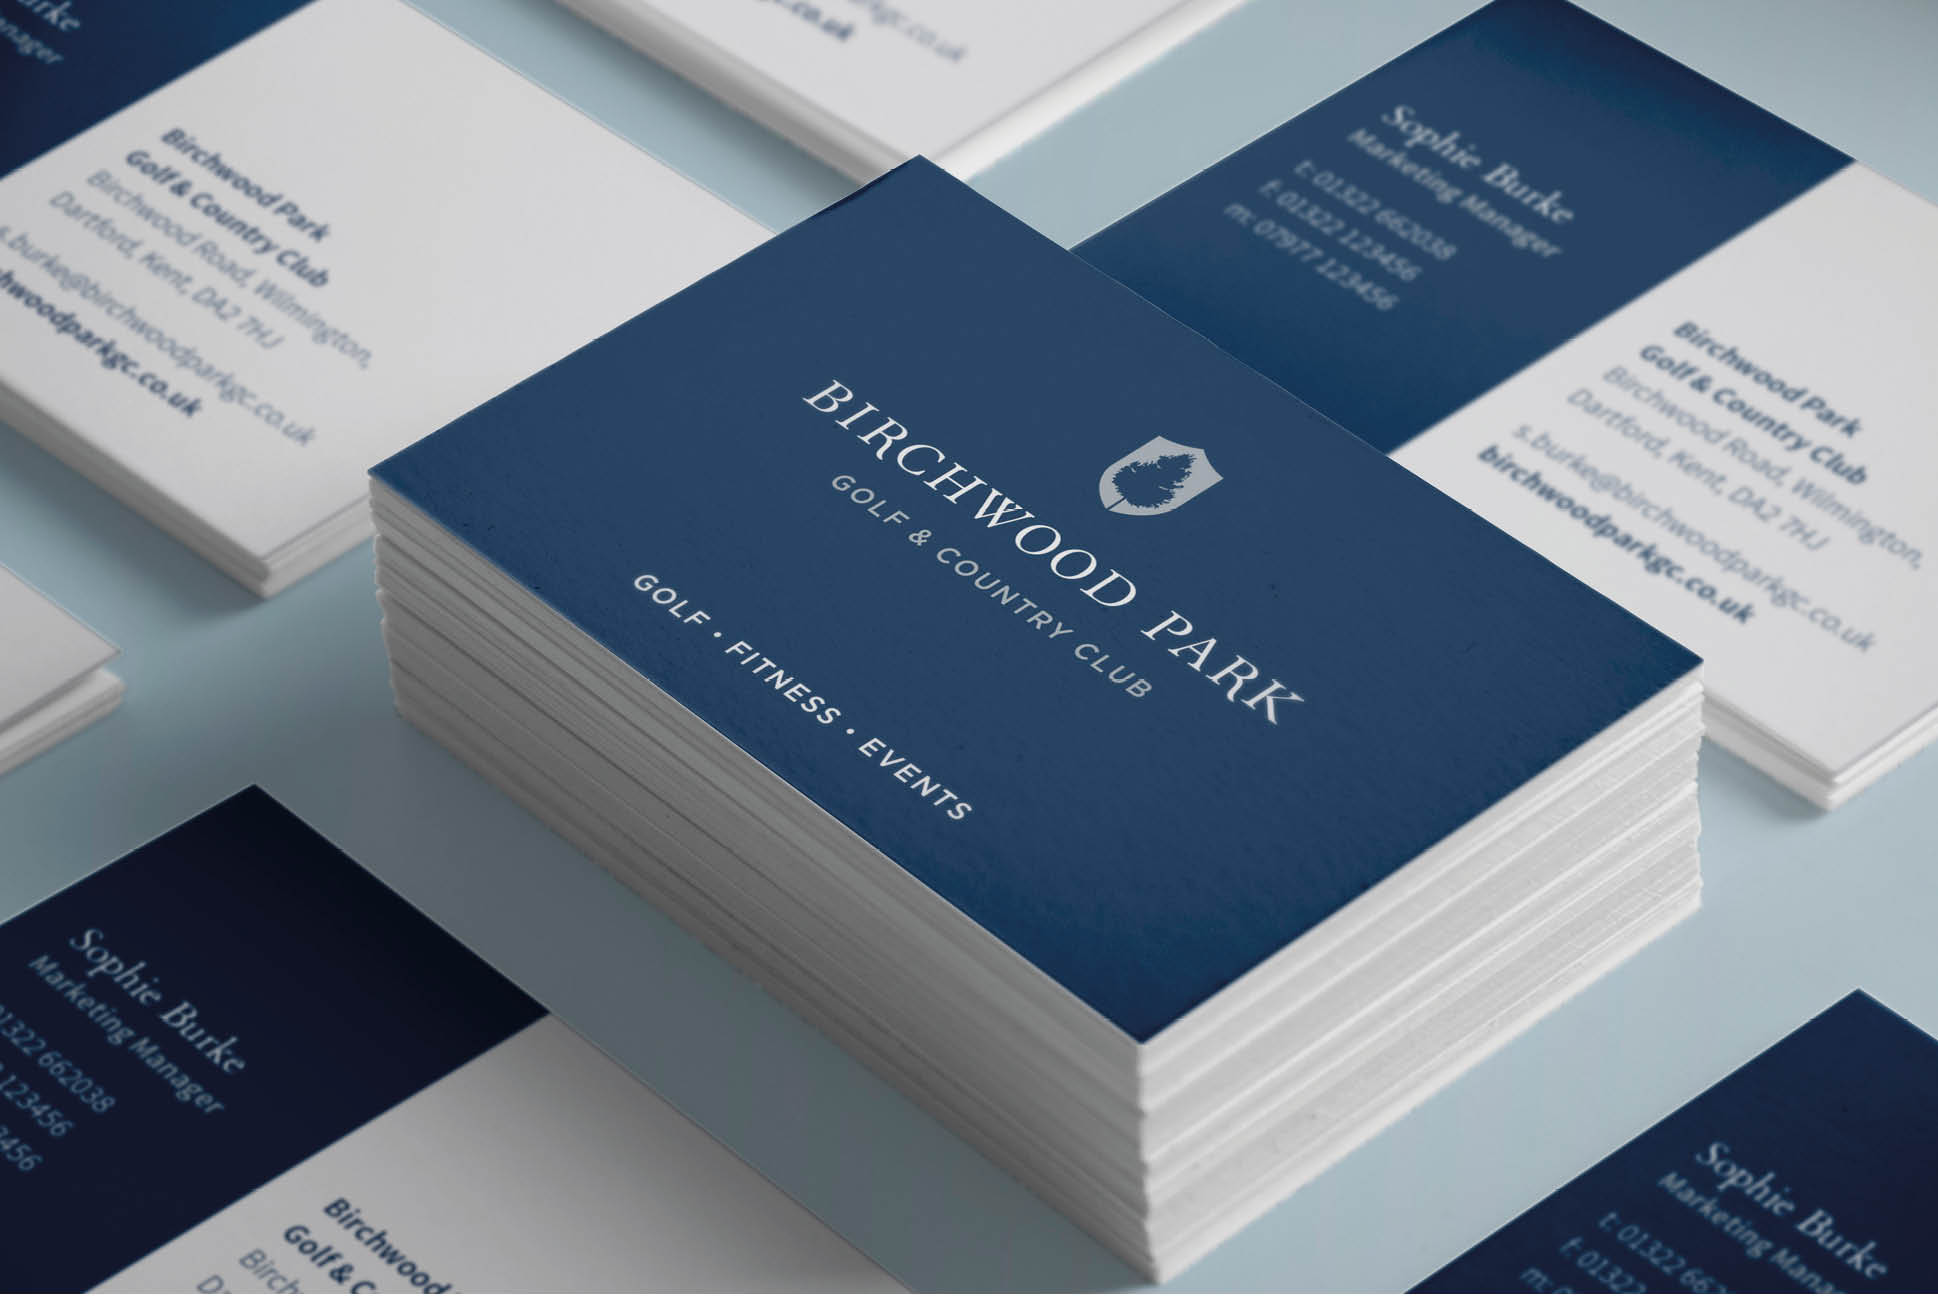 Birchwood Park Business Cards | Independent Marketing - Strategic Consulting for Branding and Marketing | BGL Golf